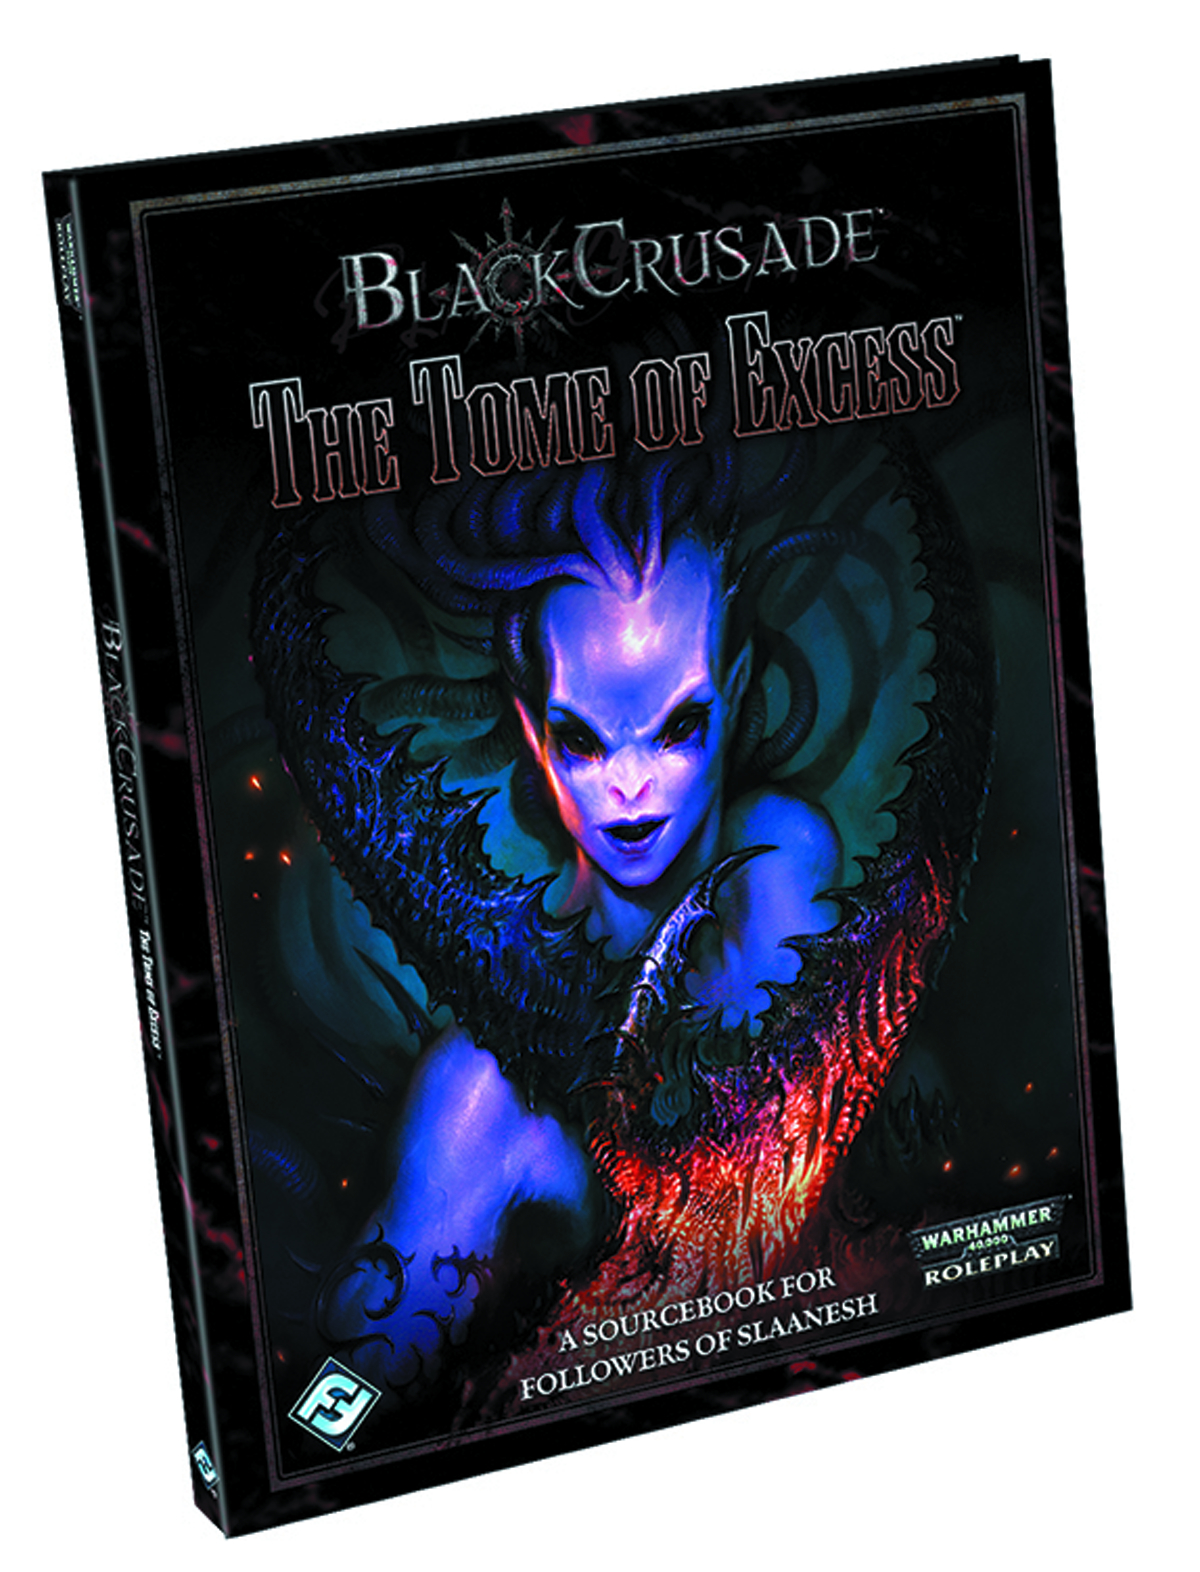 BLACK CRUSADE TOME OF EXCESS